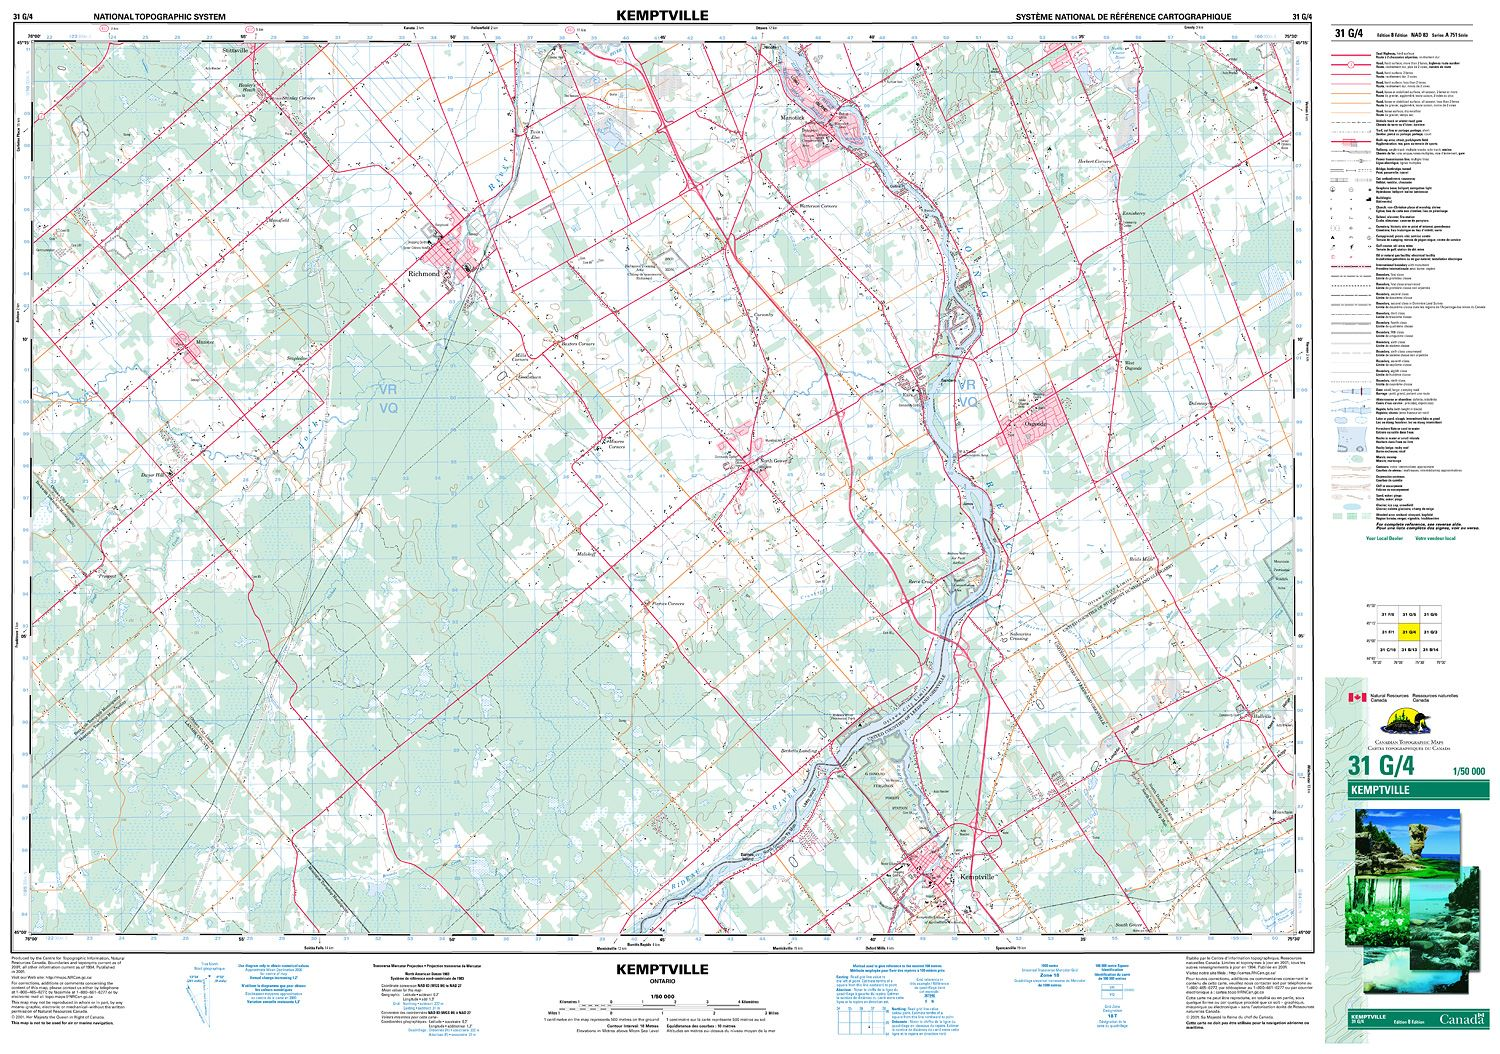 Ontario Topographic Map.031g04 Kemptville Topographic Map